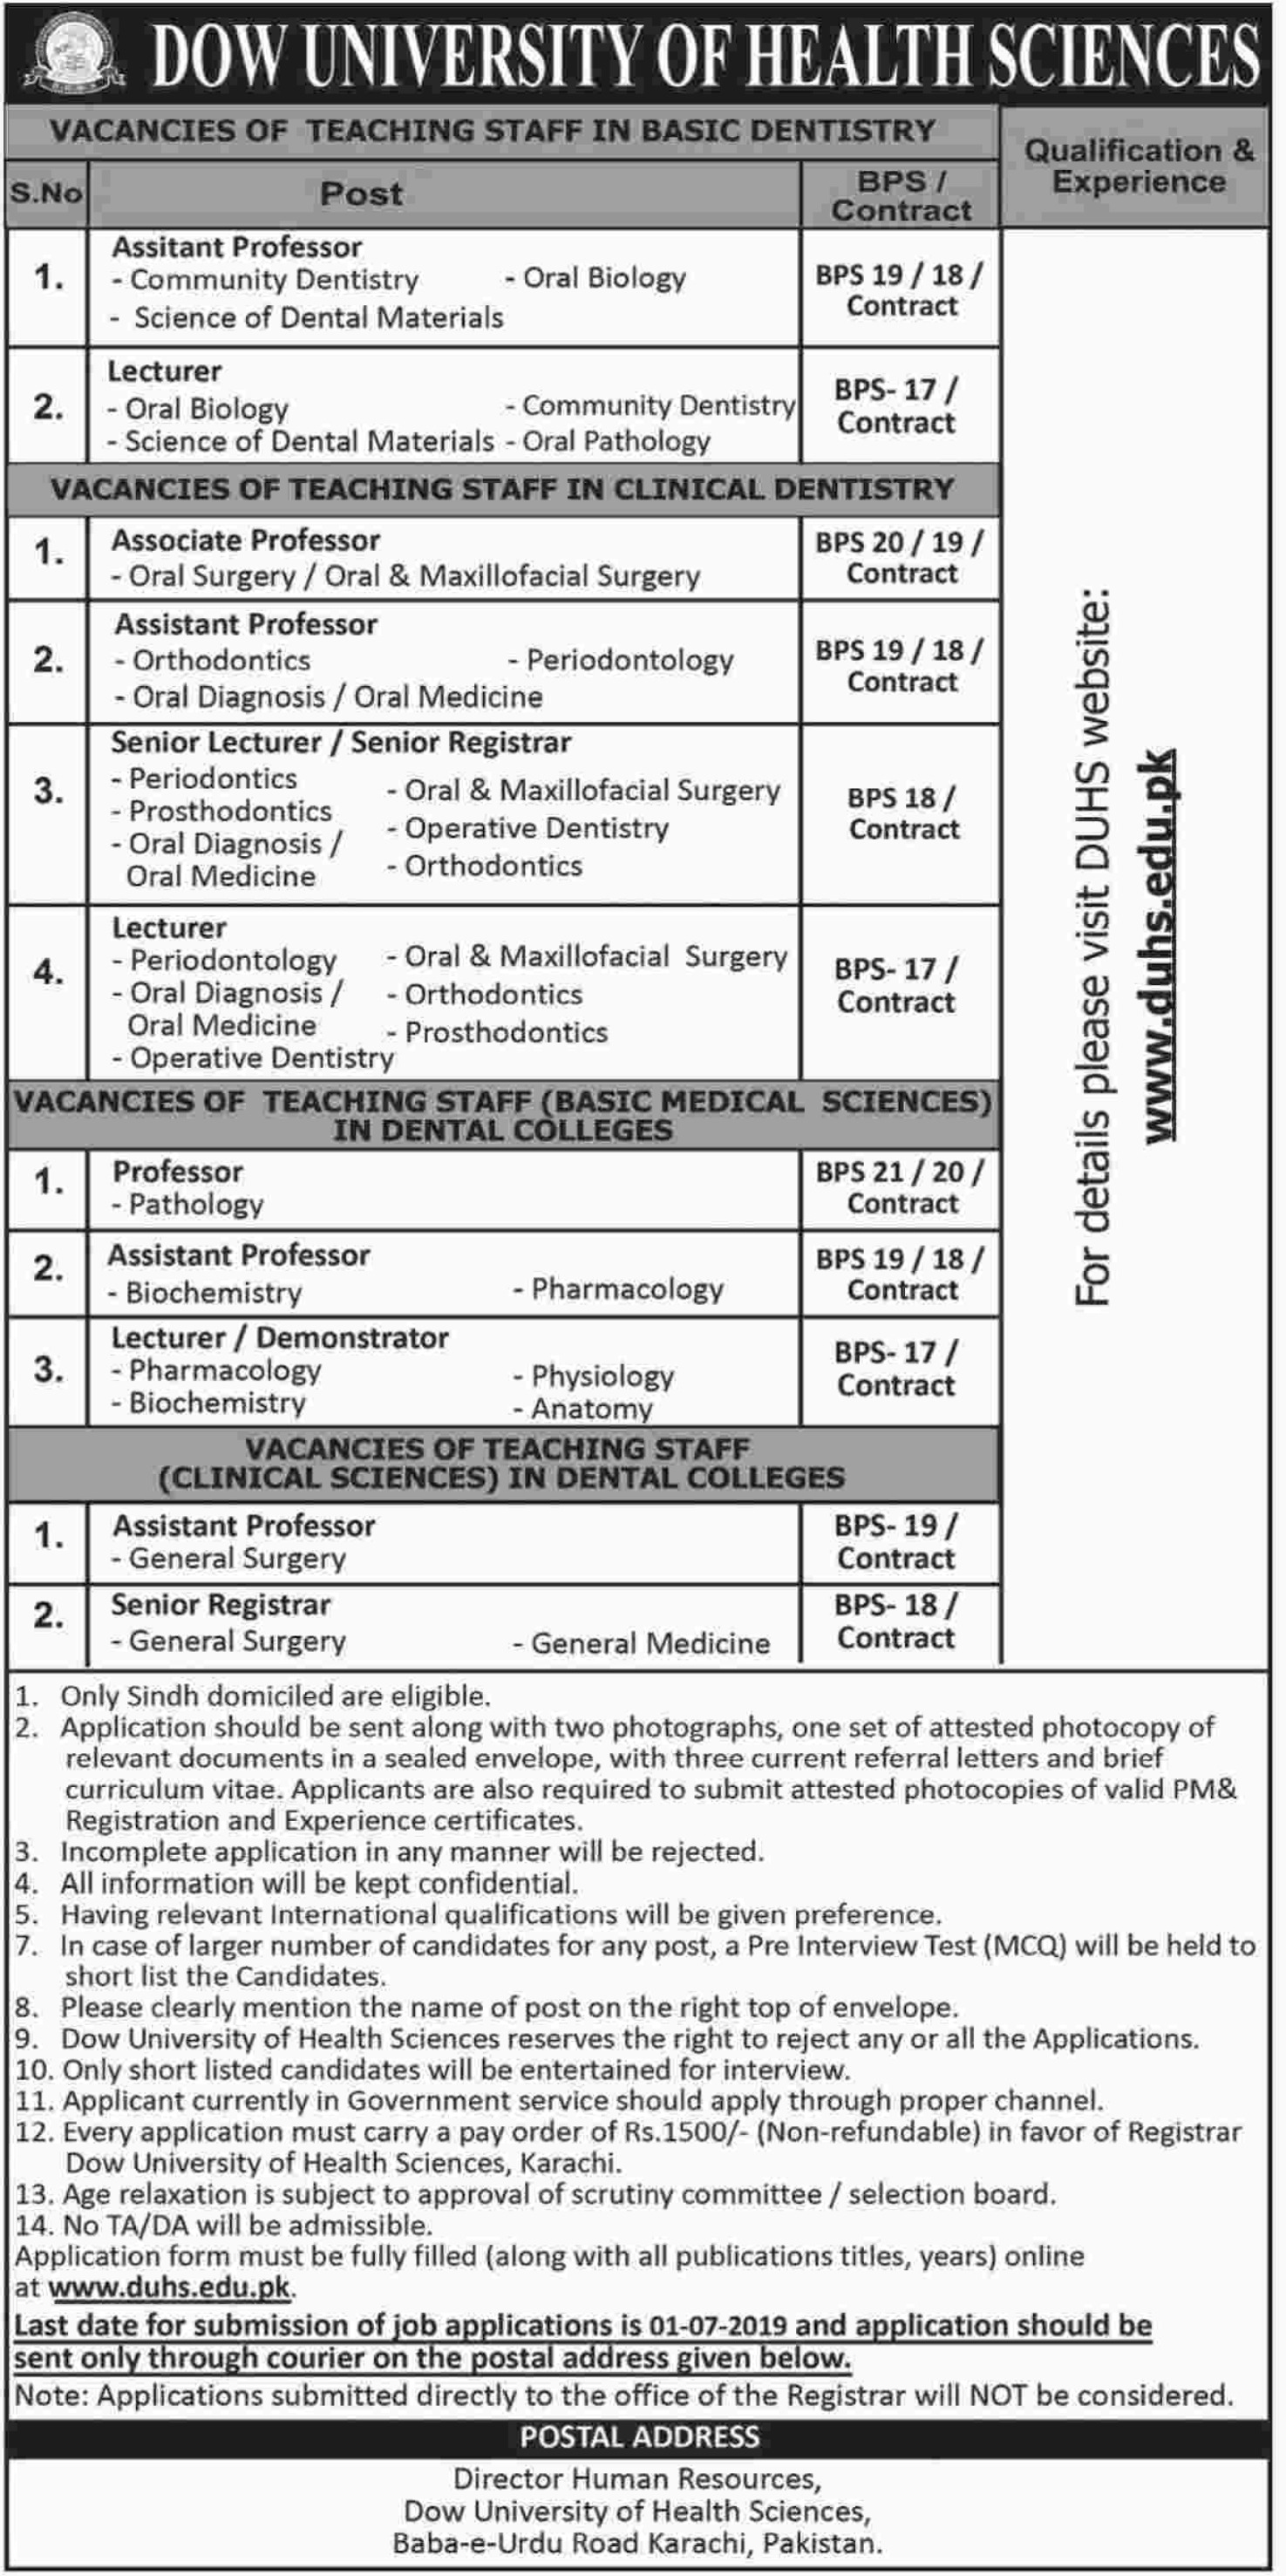 DOW University of Health Sciences Jobs 2019 DUHS Karachi